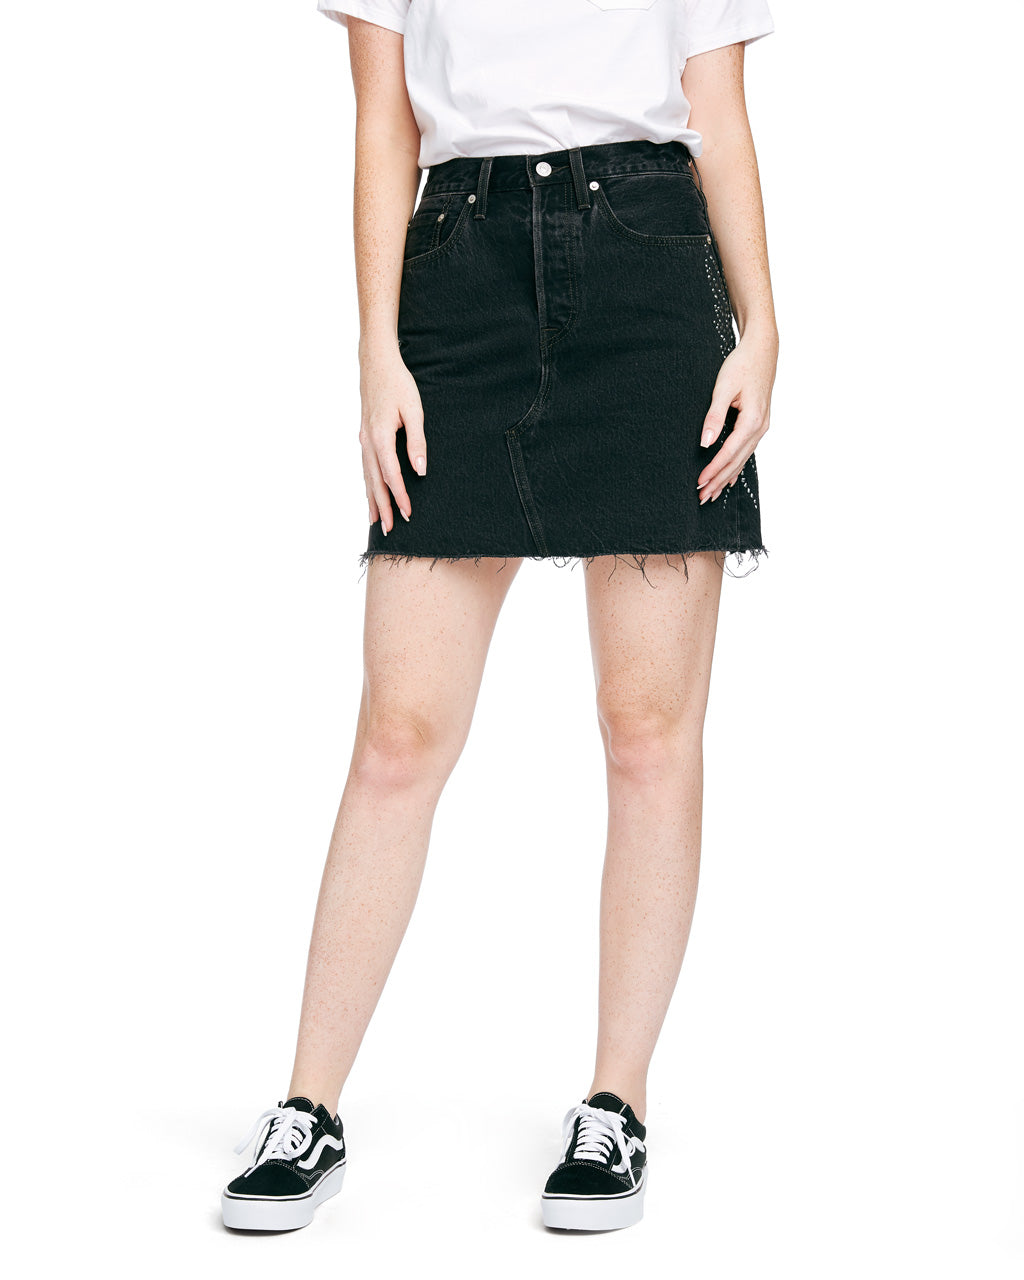 The HR Deconstructed Skirt by Levi's comes in faded black, with silver studded detail along the sides.